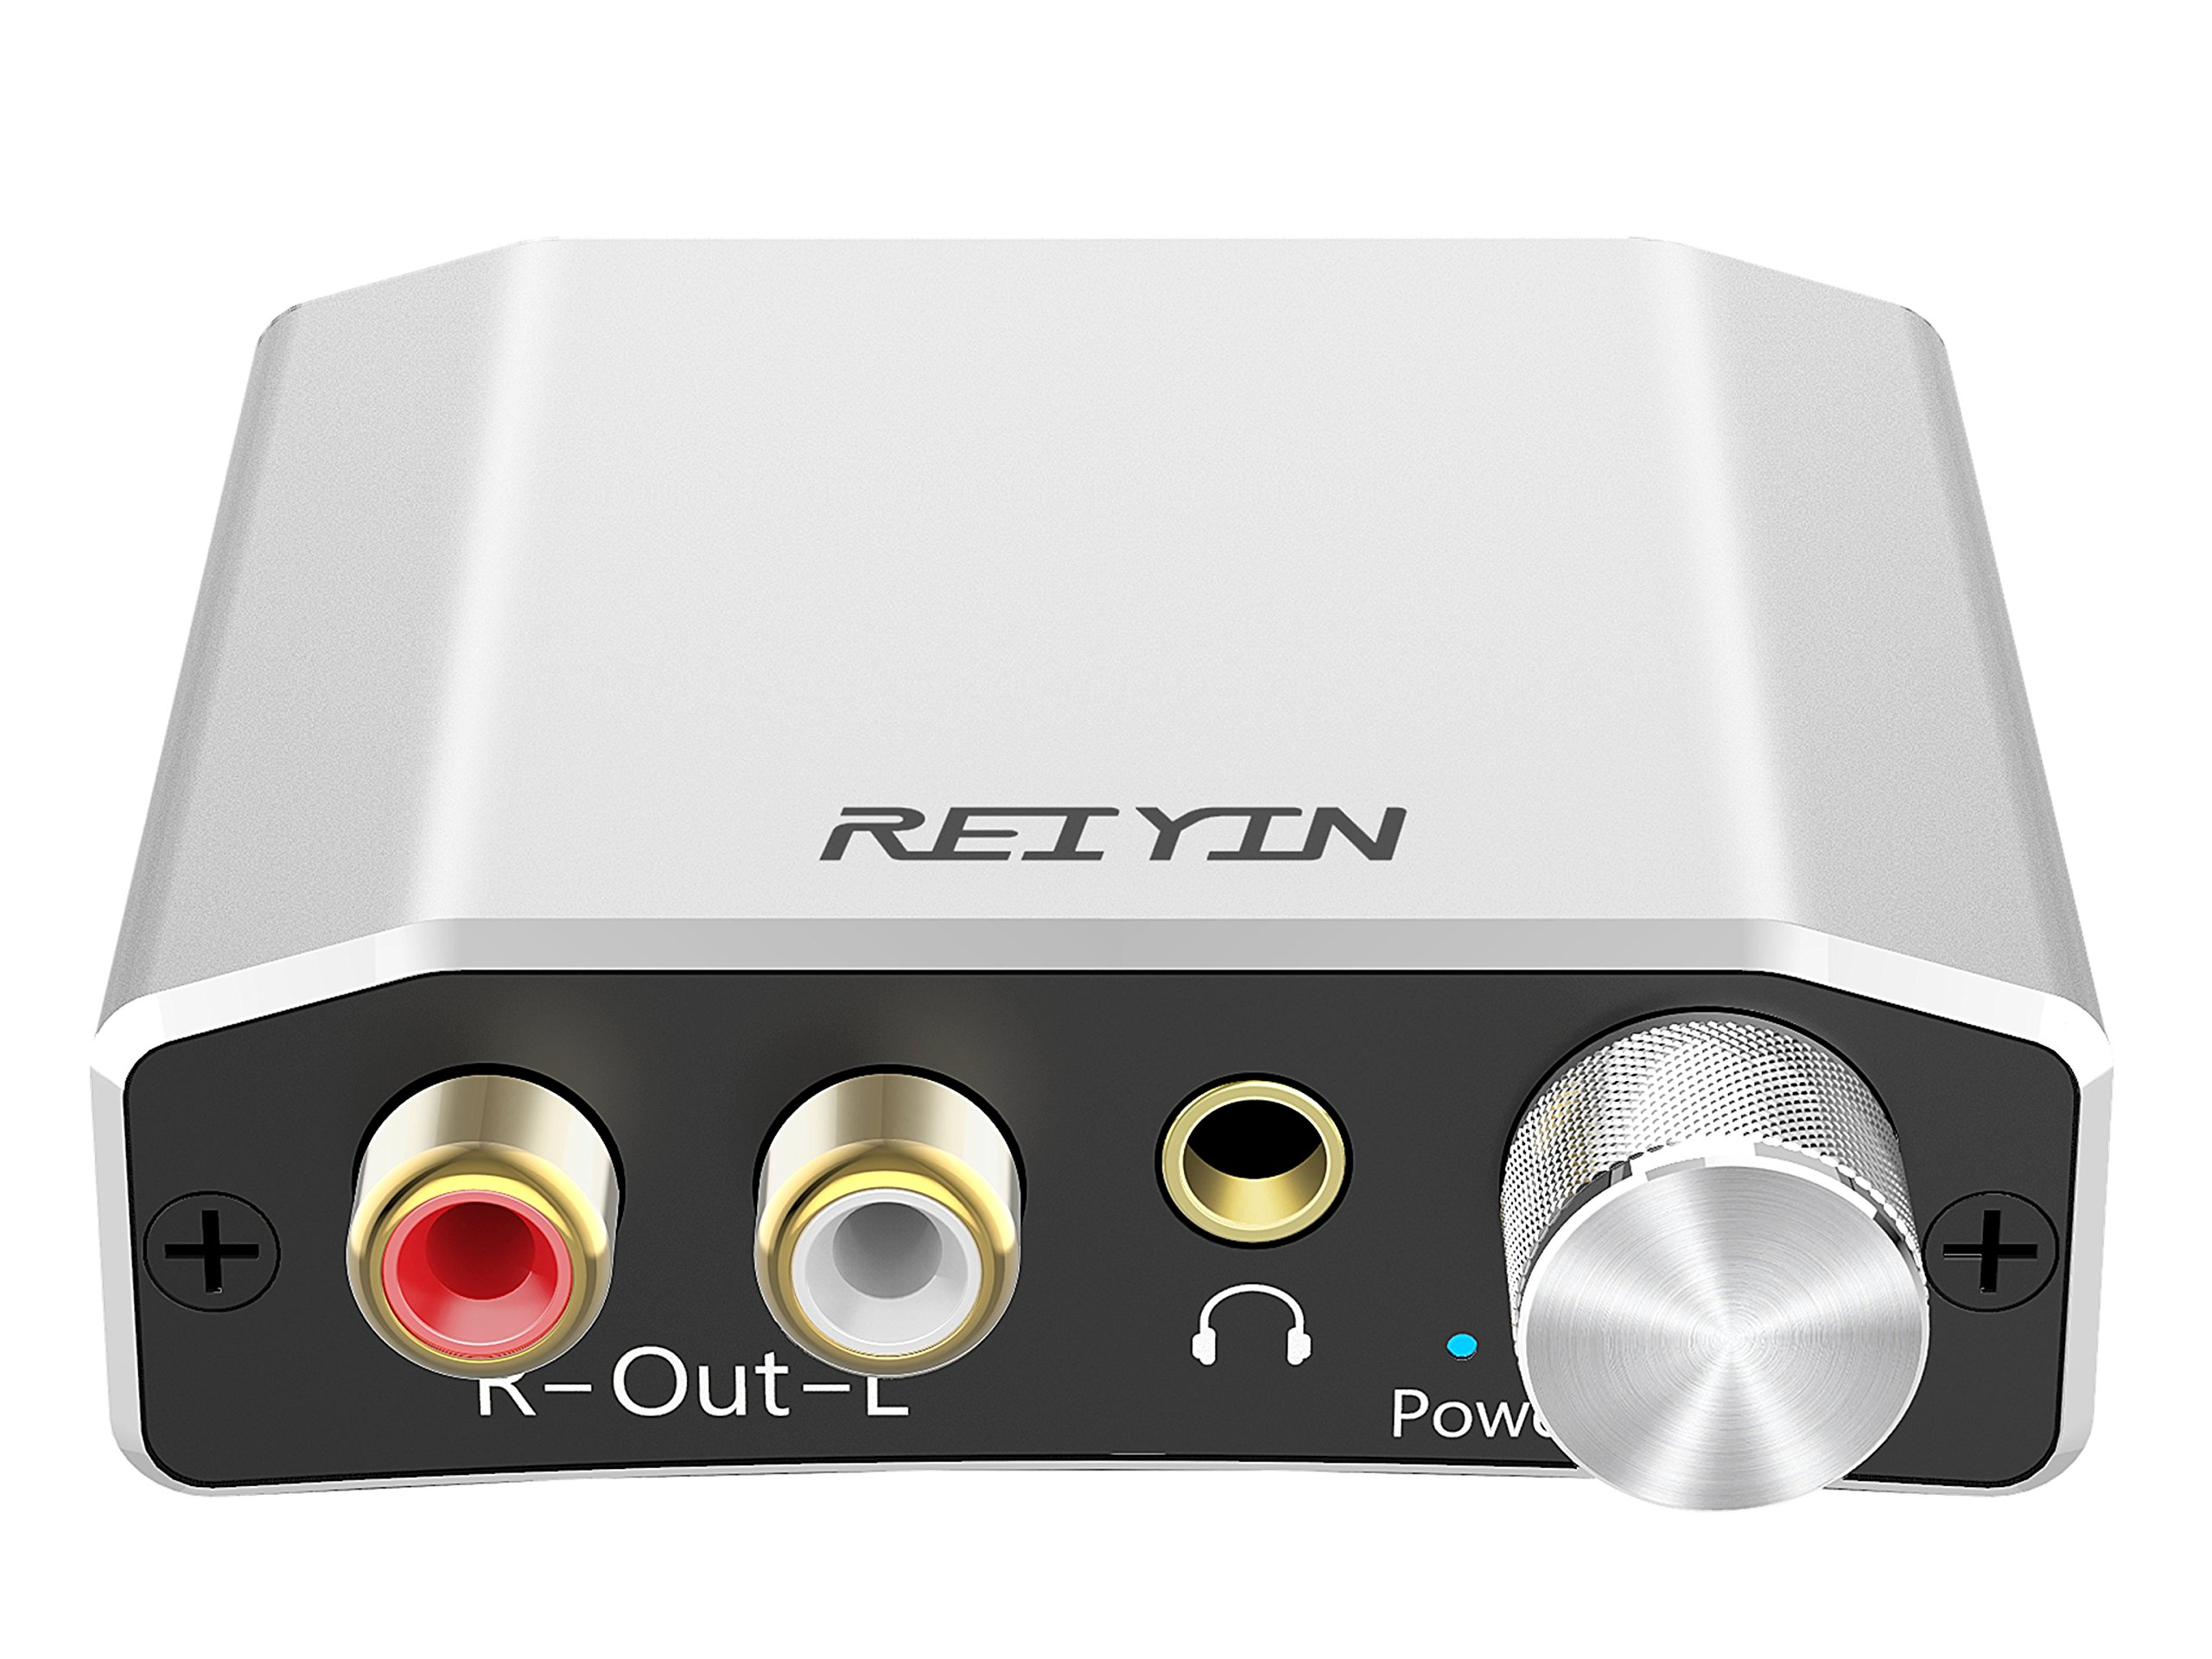 Reiyin DA-01 Digital to Analog Converter DAC Digital Optical Coaxial Toslink to Analog Stereo L/R RCA 3.5mm Audio Adapter with Volume Control for PS3 PS4 Xbox DVD AV Amps Cinema Systems Apple TV